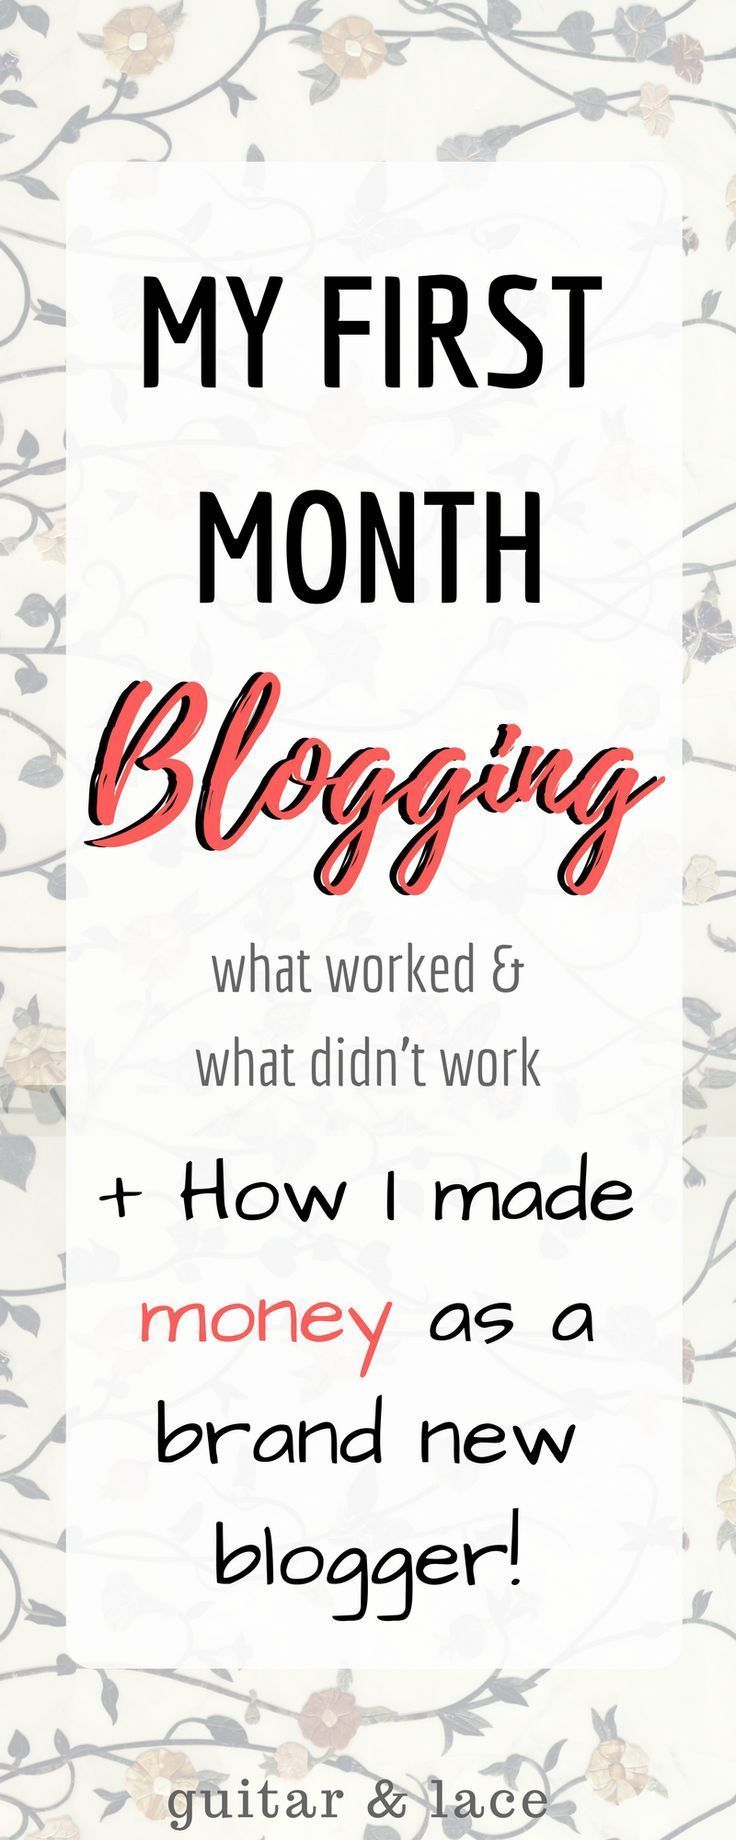 After my first month of blogging I have gained more views, followers and even made money! If I can do it, anyone can do it! New Bloggers | Income Report | Blog Traffic | How to Boost Your Blog's Traffic | Earn money with a small Blog